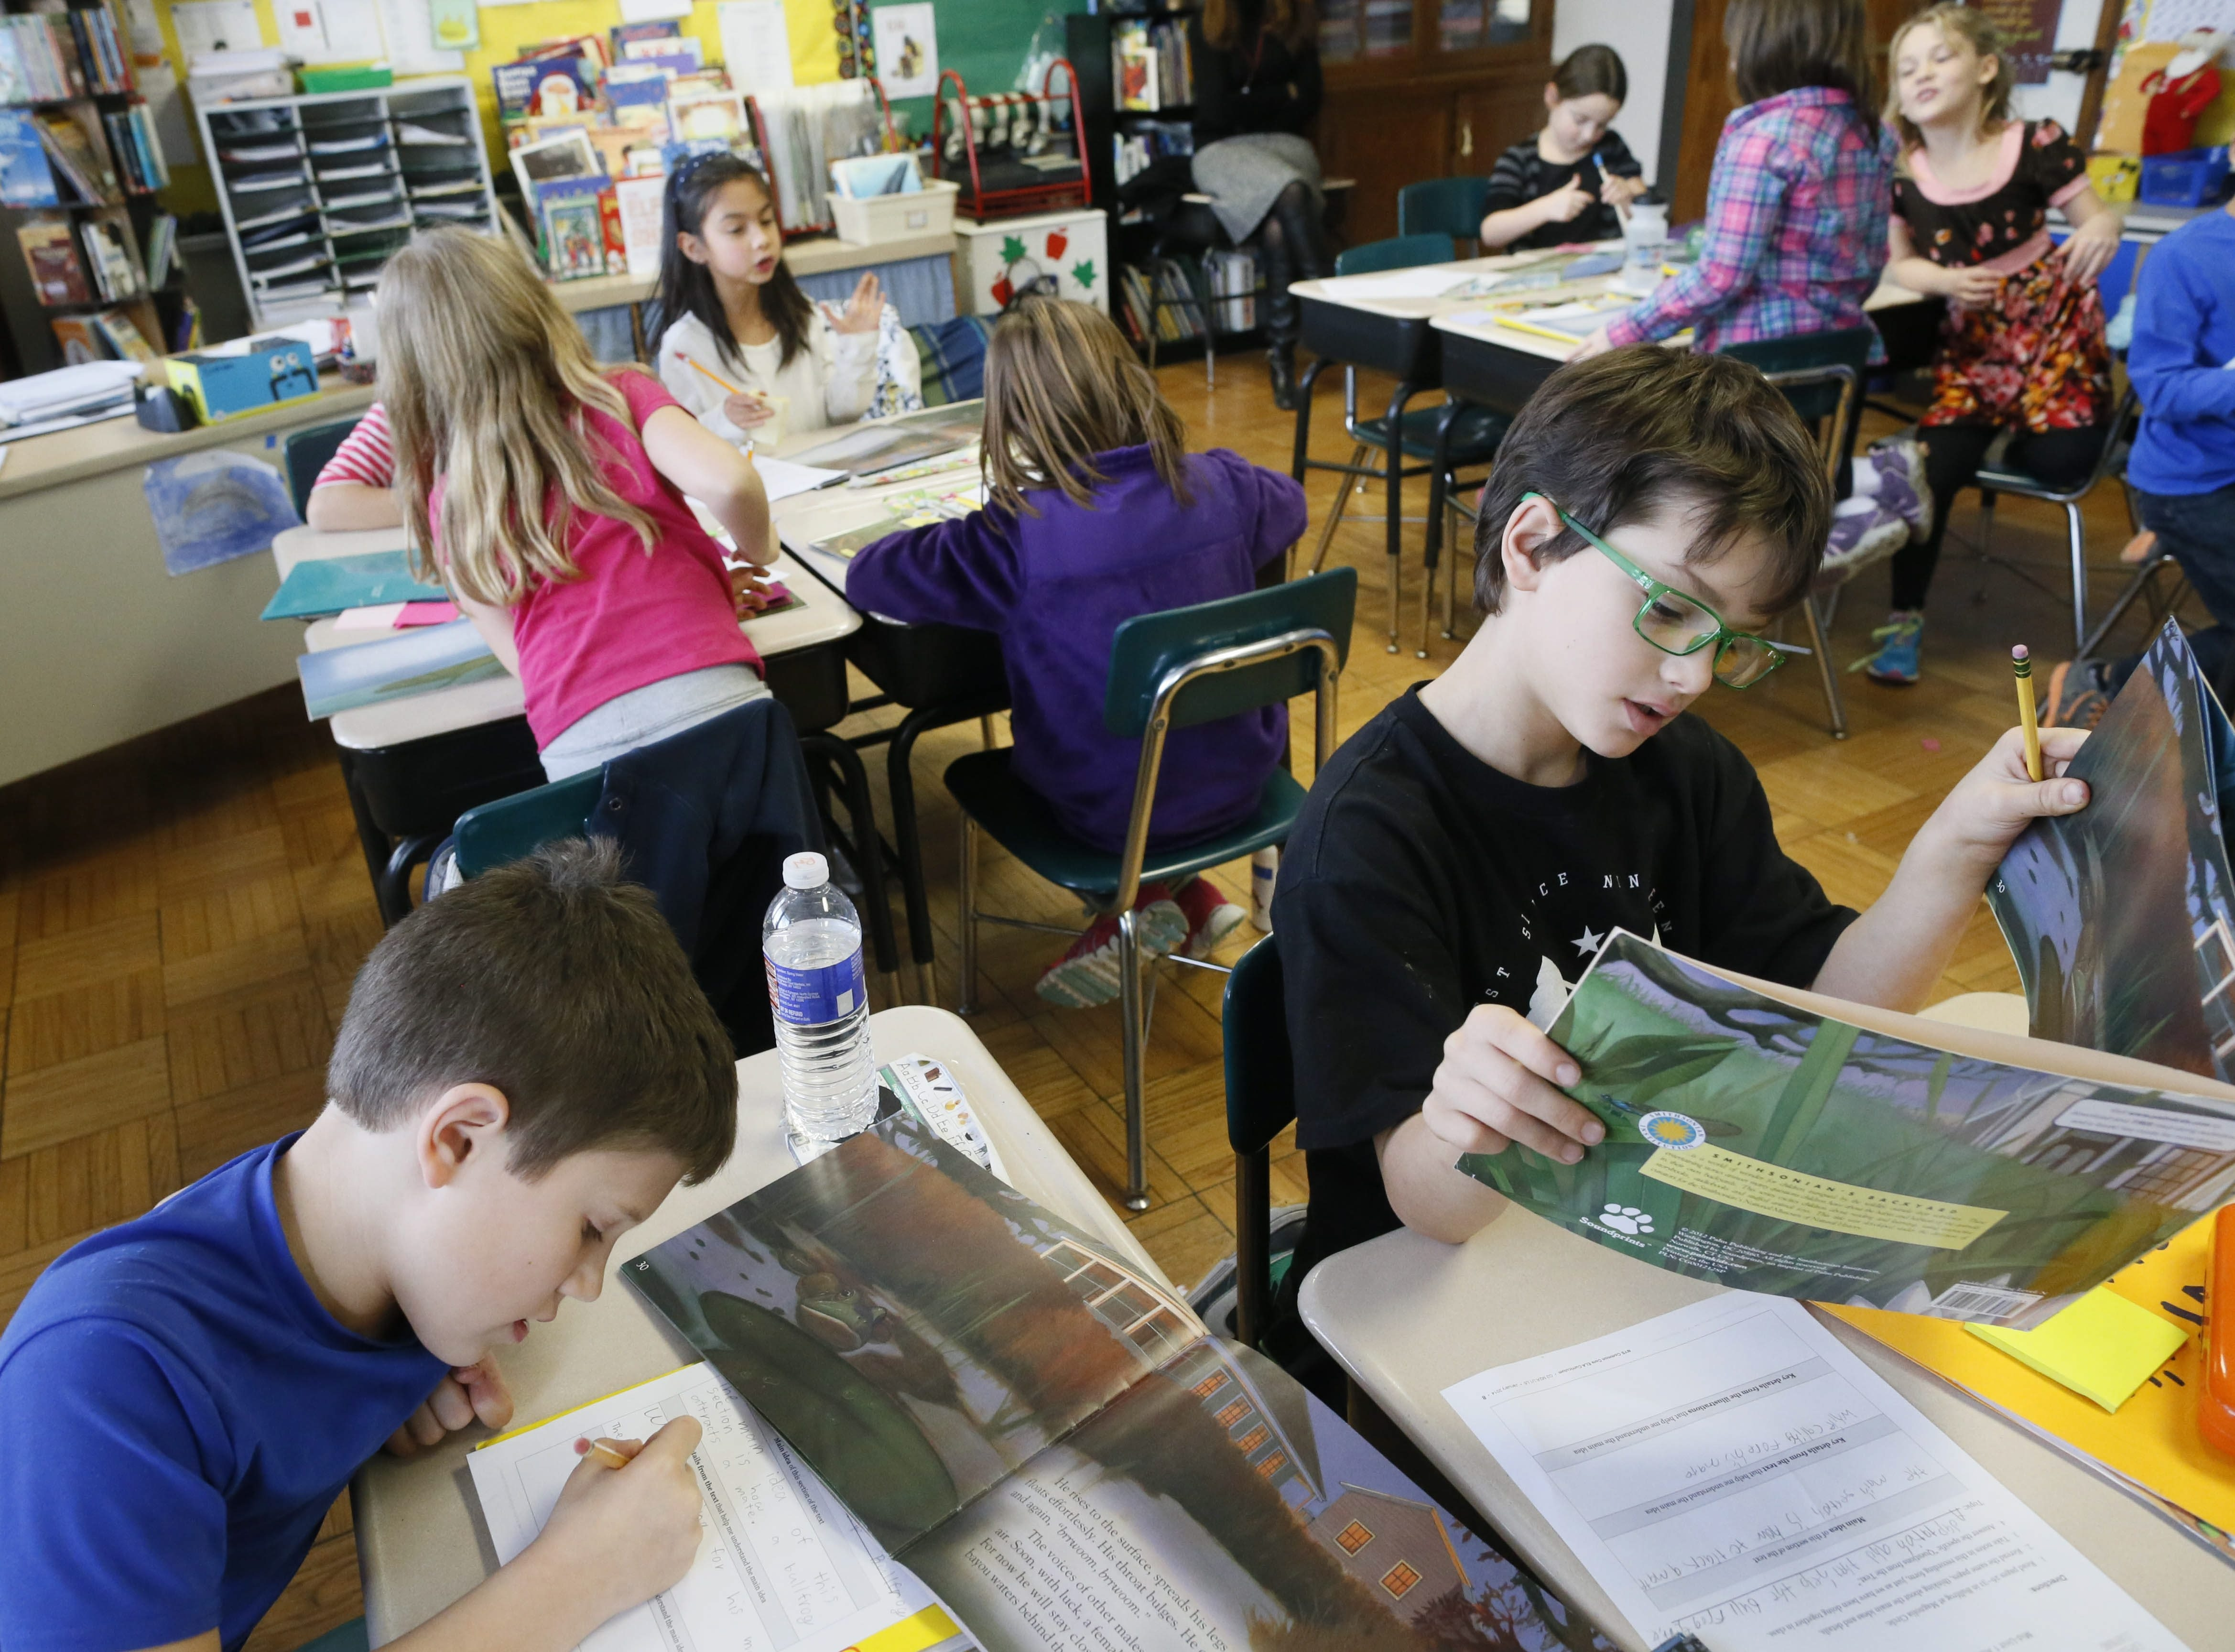 Third-graders work on a close-reading exercise at Eden Elementary School. Changes are coming to the Common Core that sound reasonable, as long as they don't become a capitulation to teachers unions and other special interests.